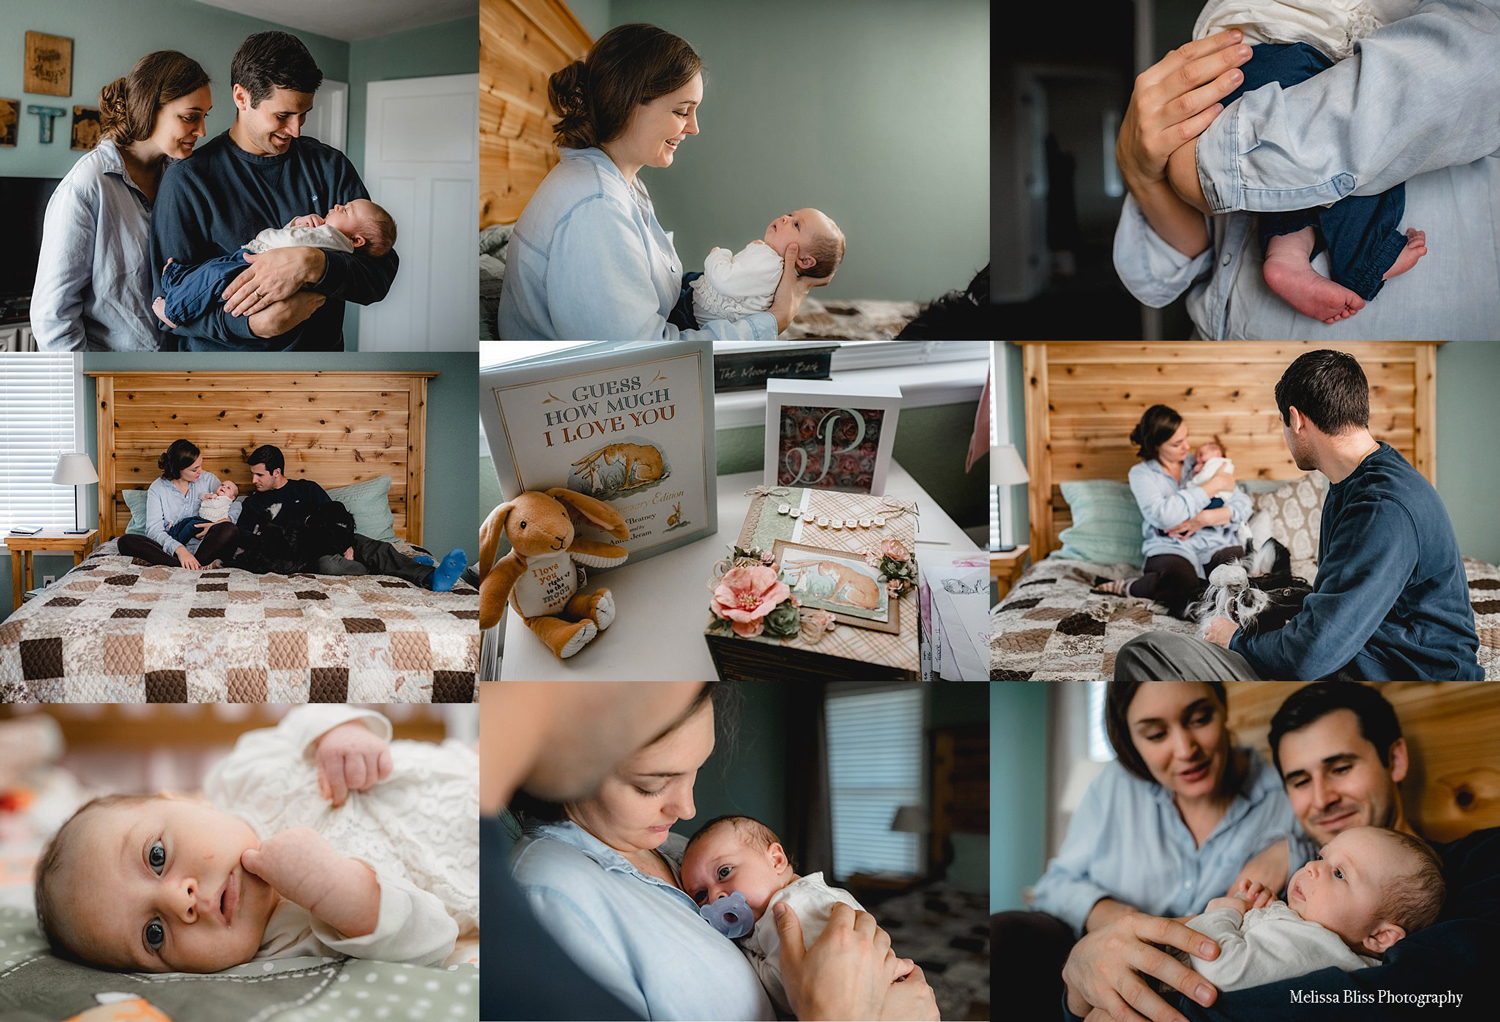 norfolk-newborn-lifestyle-photographer-melissa-bliss-photography.jpg